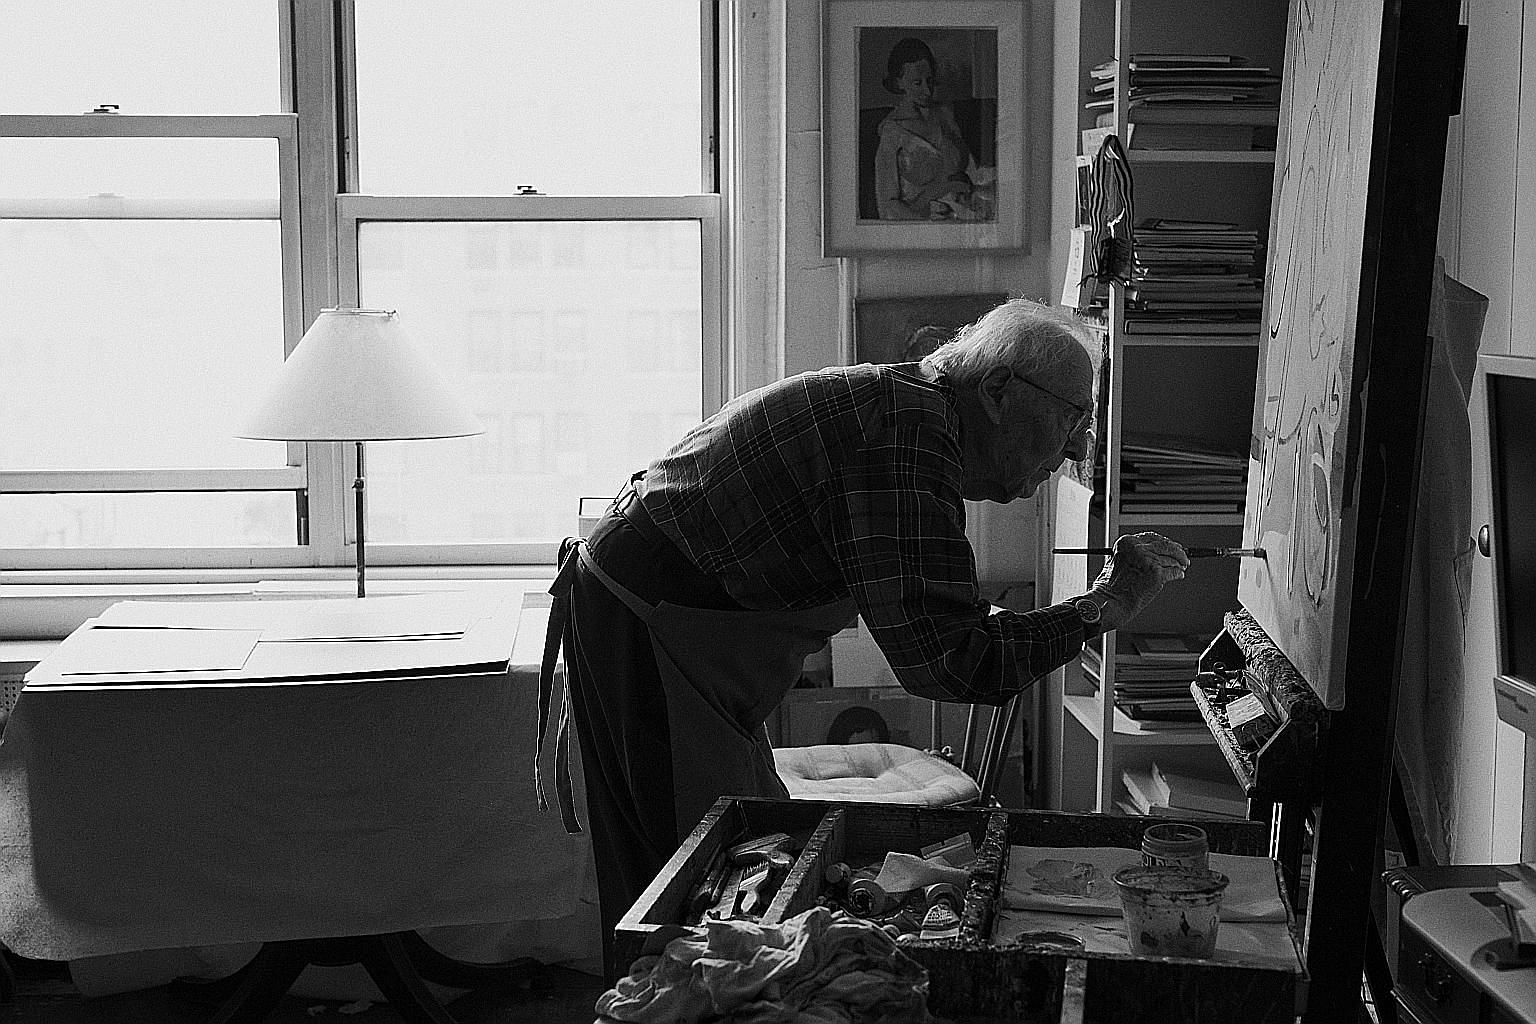 Serge Hollerbach touching up a painting in his studio in Manhattan last month. The 94-year-old has painted throughout every aspect of his vision loss caused by macular degeneration.